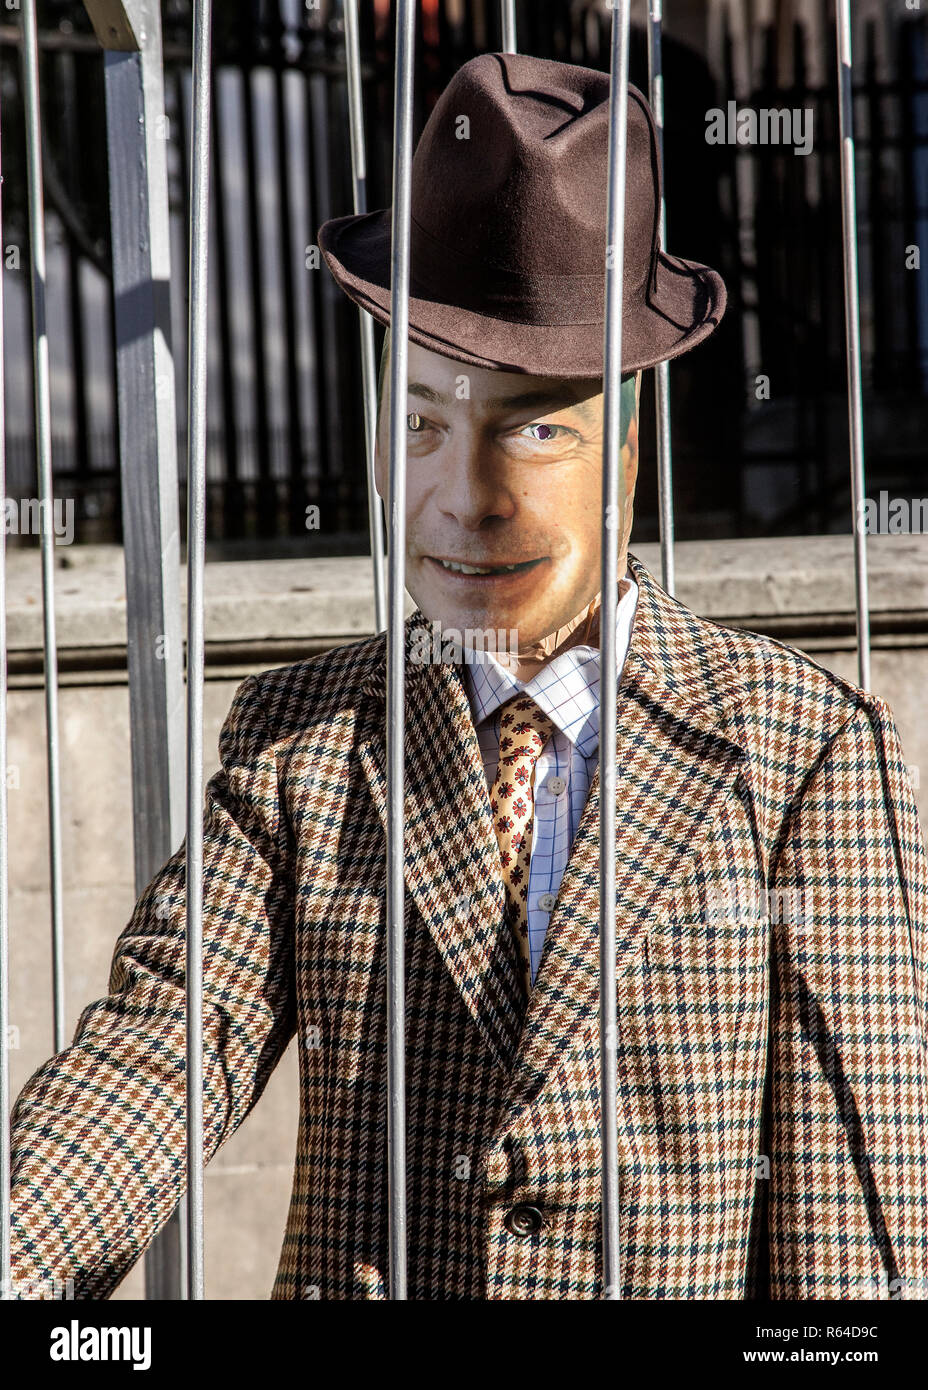 Nigel Farage mannequin behind bars, at anti brexit march London - Stock Image